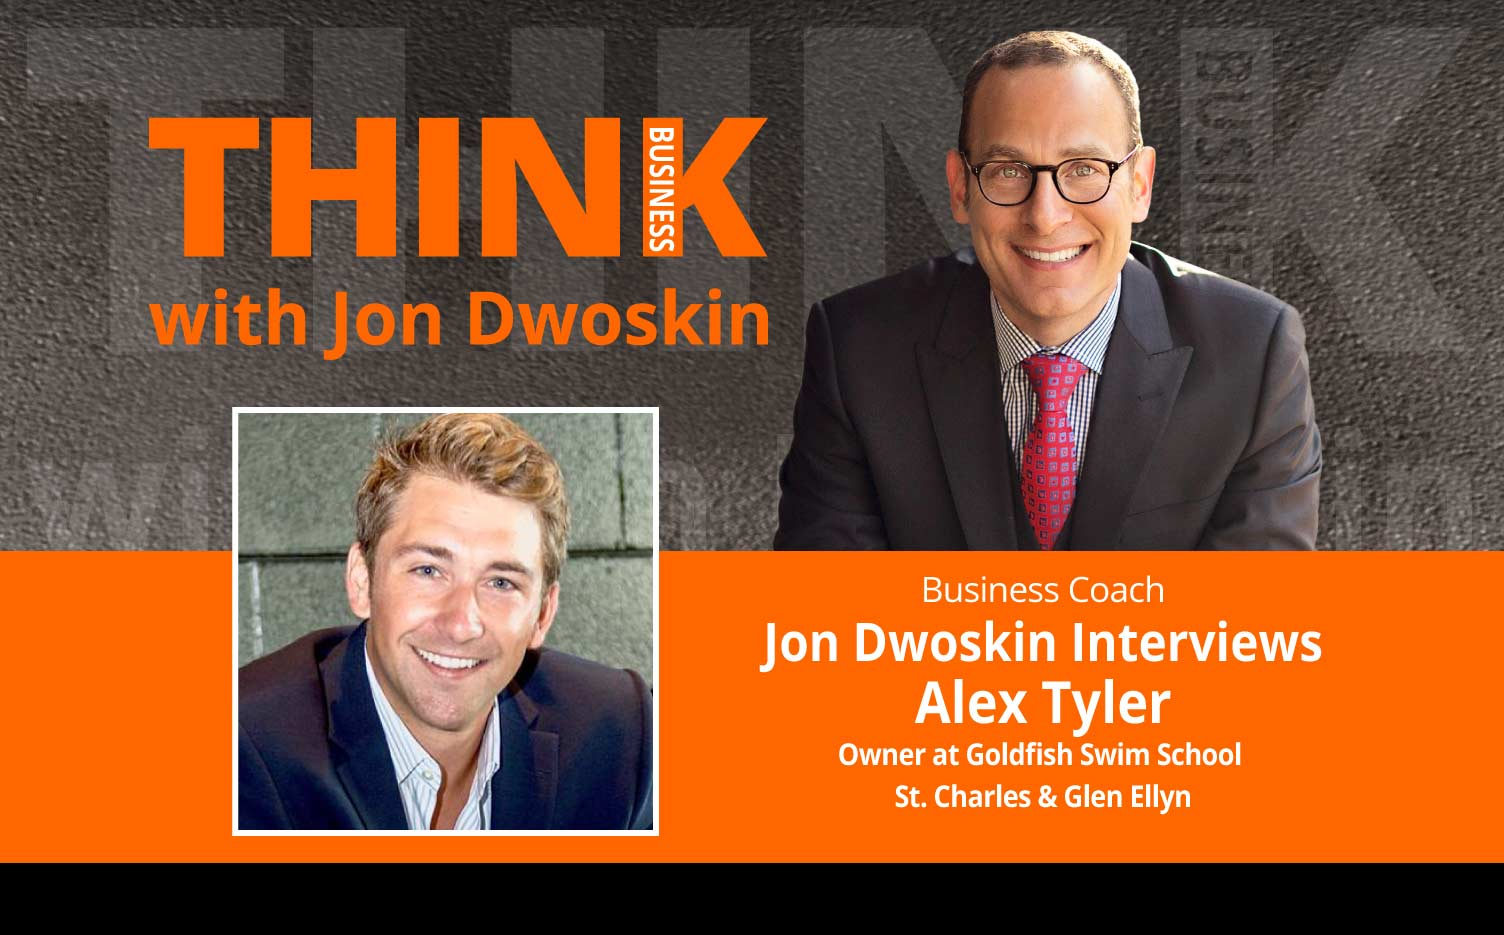 THINK Business Podcast: Jon Dwoskin Interviews Alex Tyler, Owner at Goldfish Swim School - St. Charles & Glen Ellyn